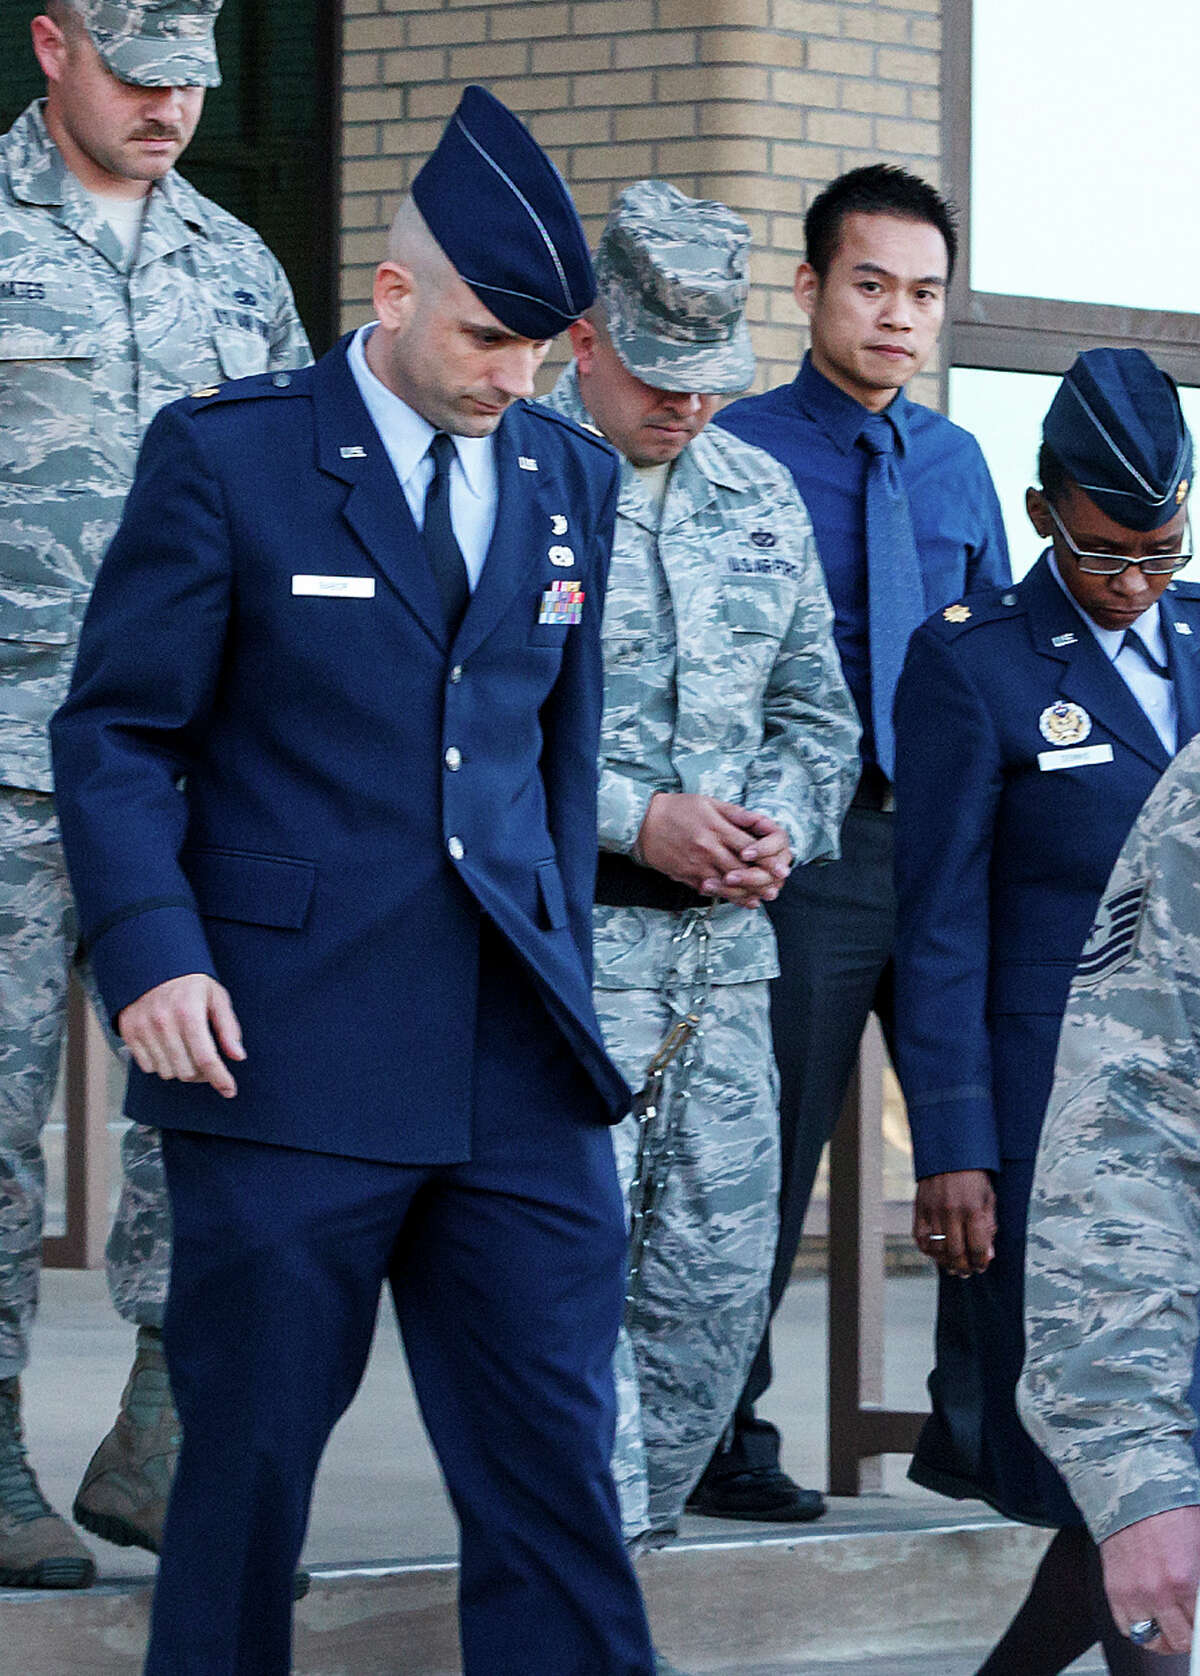 A shackled Staff Sgt. Eddy Soto (center) is escorted out of a building at Joint Base San Antonio-Lackland after being found guilty.